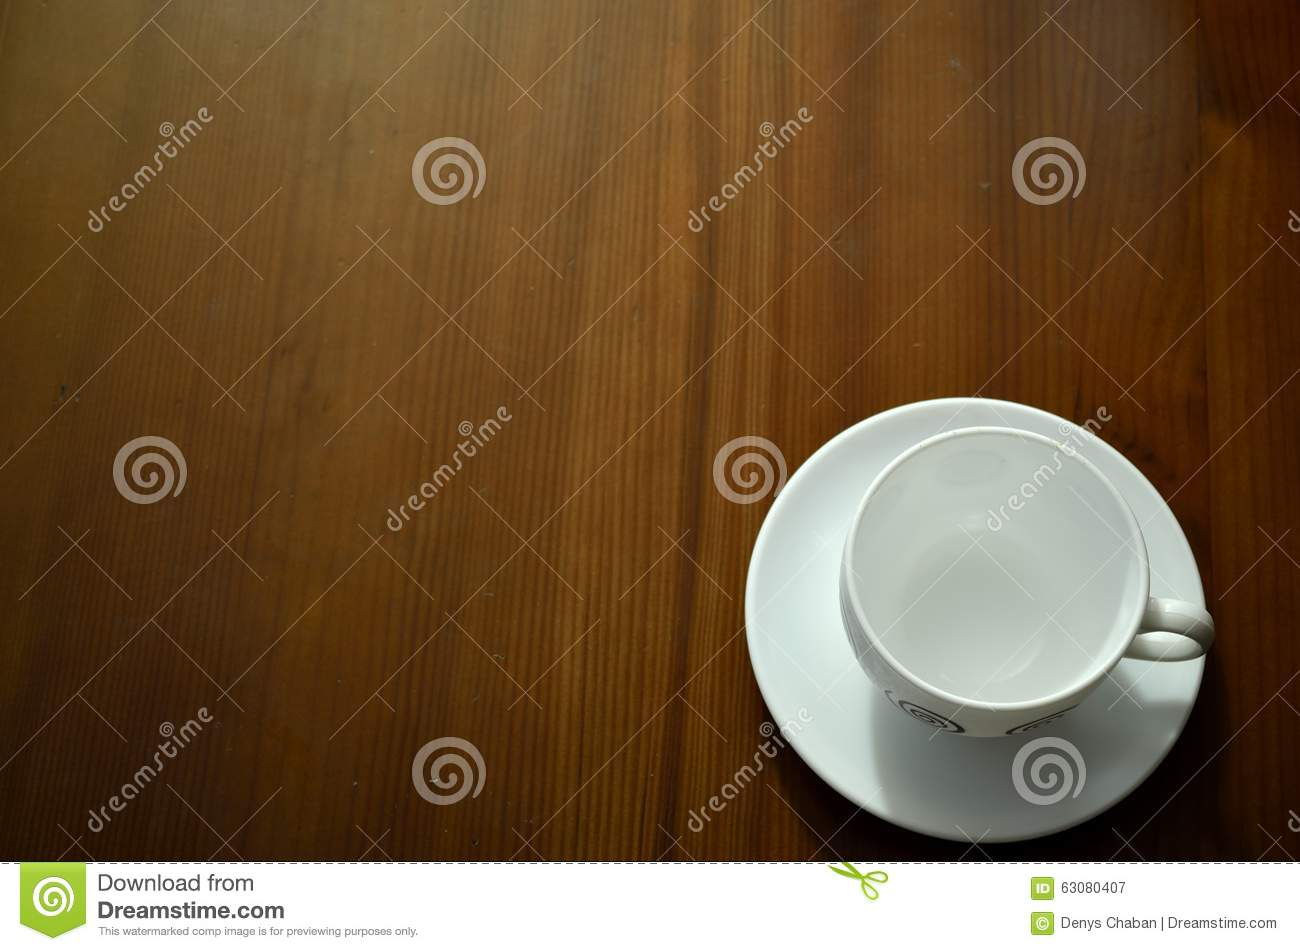 Download Cuvette De Café Sur La Table En Bois Image stock - Image du nourriture, closeup: 63080407